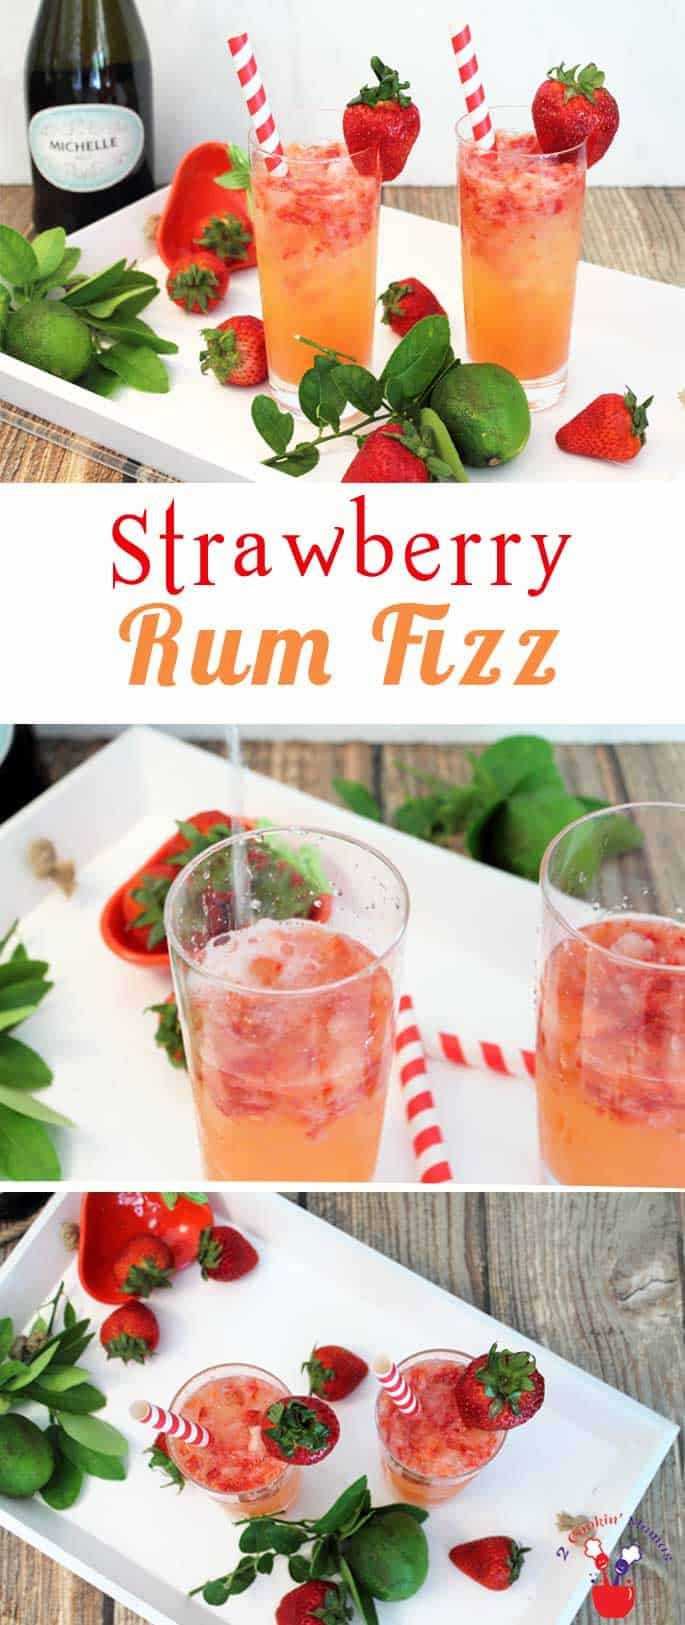 Strawberry Rum Fizz is the perfect cocktail for brunches & summer parties. Strawberries, lime & rum are topped with champagne for a cool, refreshing drink. #cocktail #strawberry #rum #recipe #summercocktail